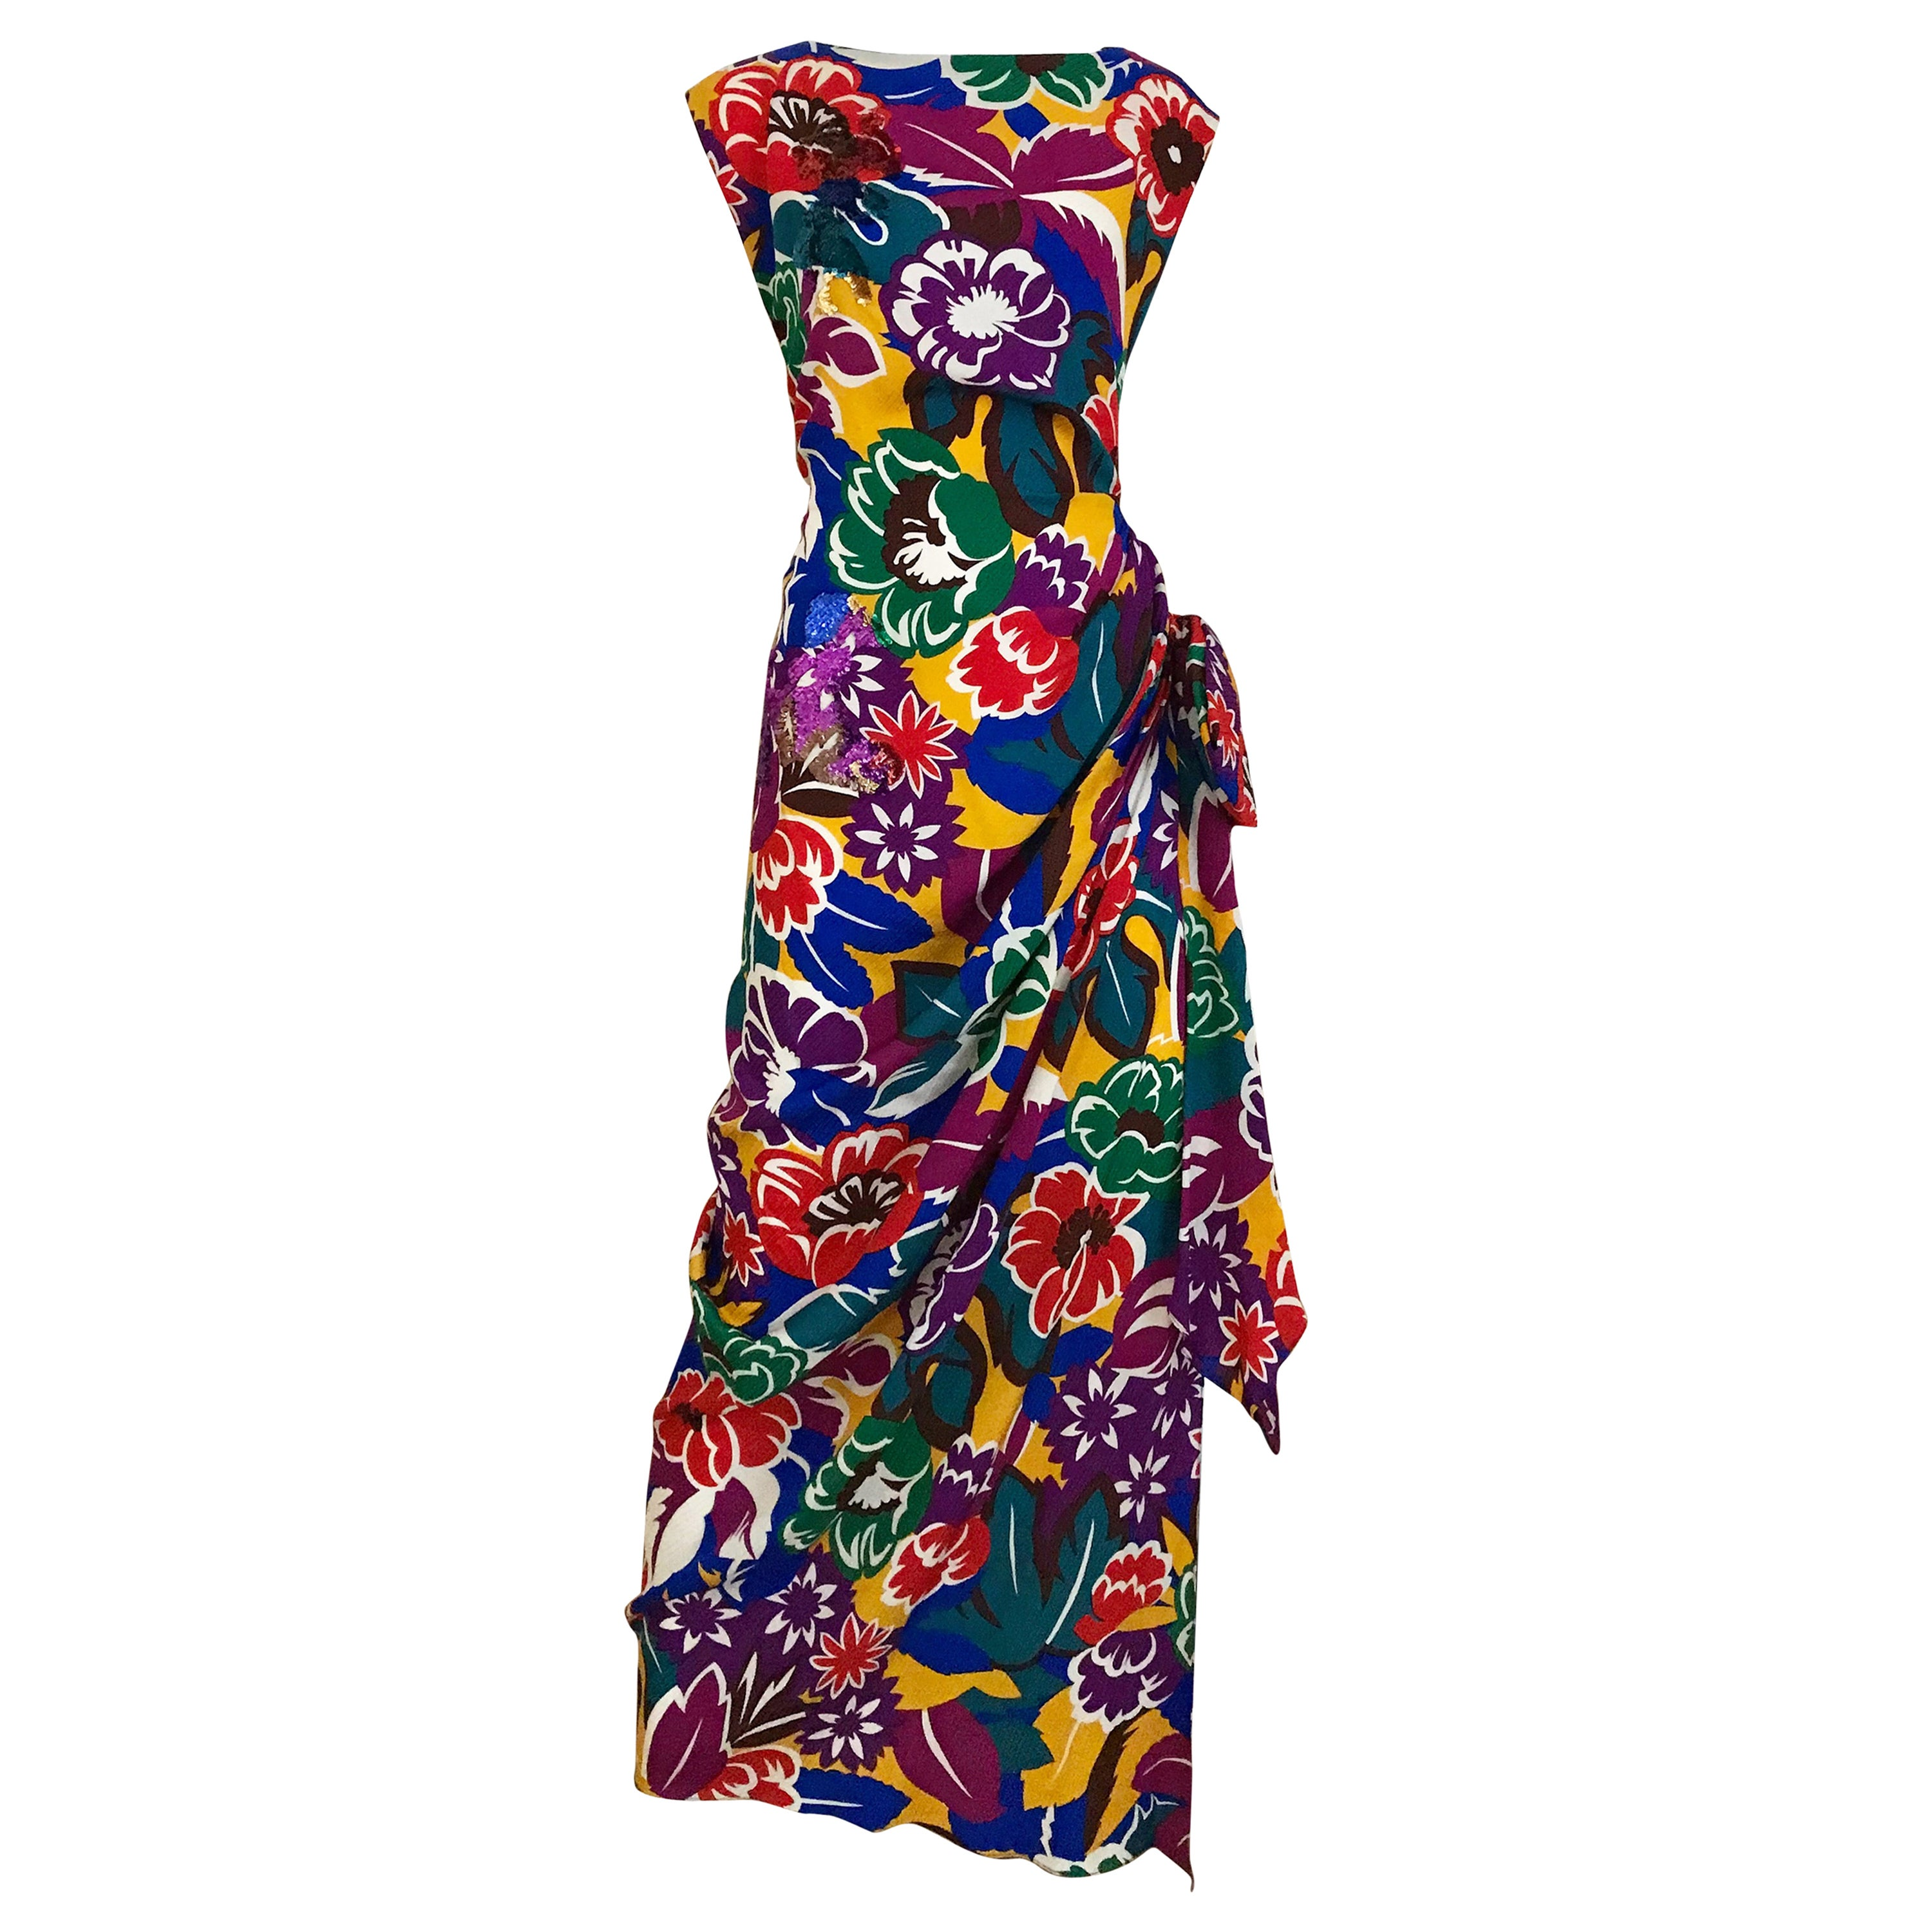 1990s Oscar De La RENTA Silk Rayon  Multi Color Print Floral Cocktail Dress